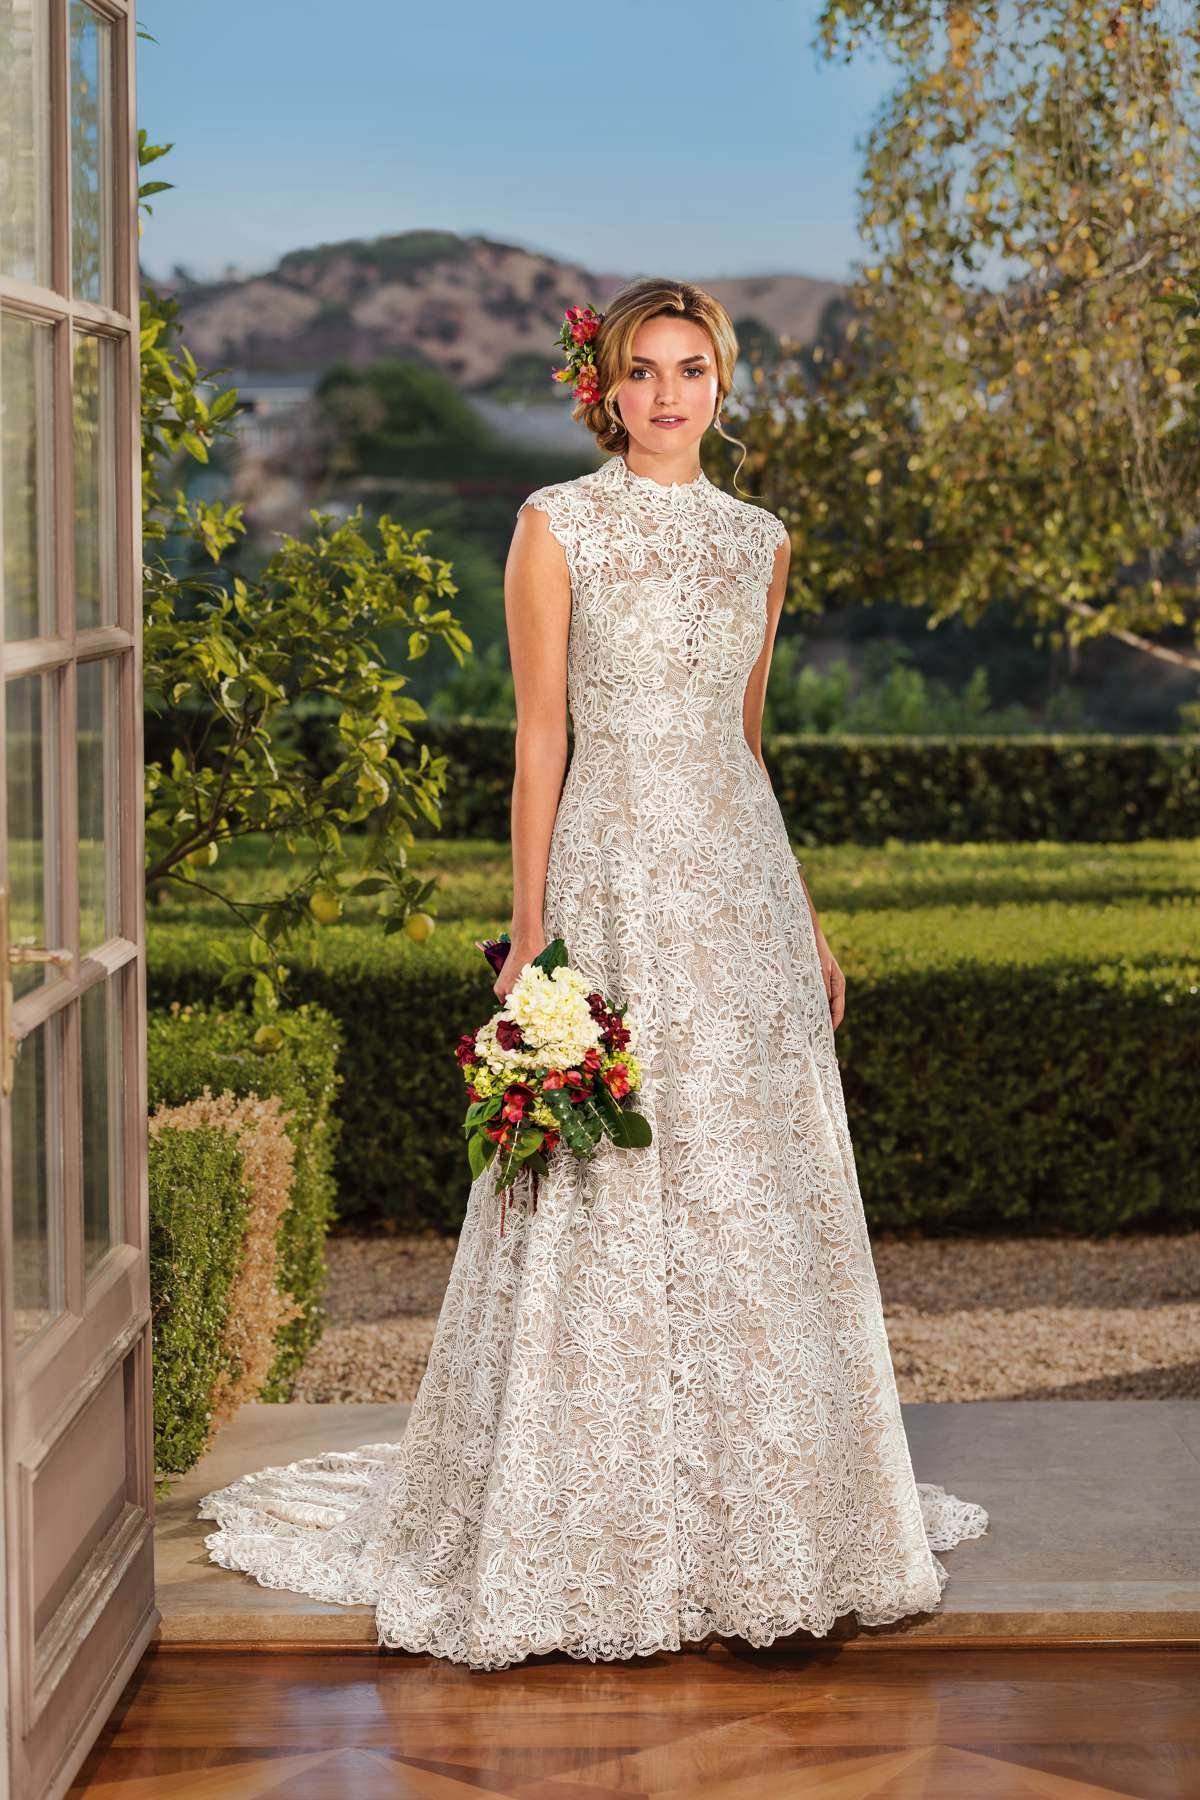 831610a6af Vienna by Casablanca Bridal - Find Your Dream Dress